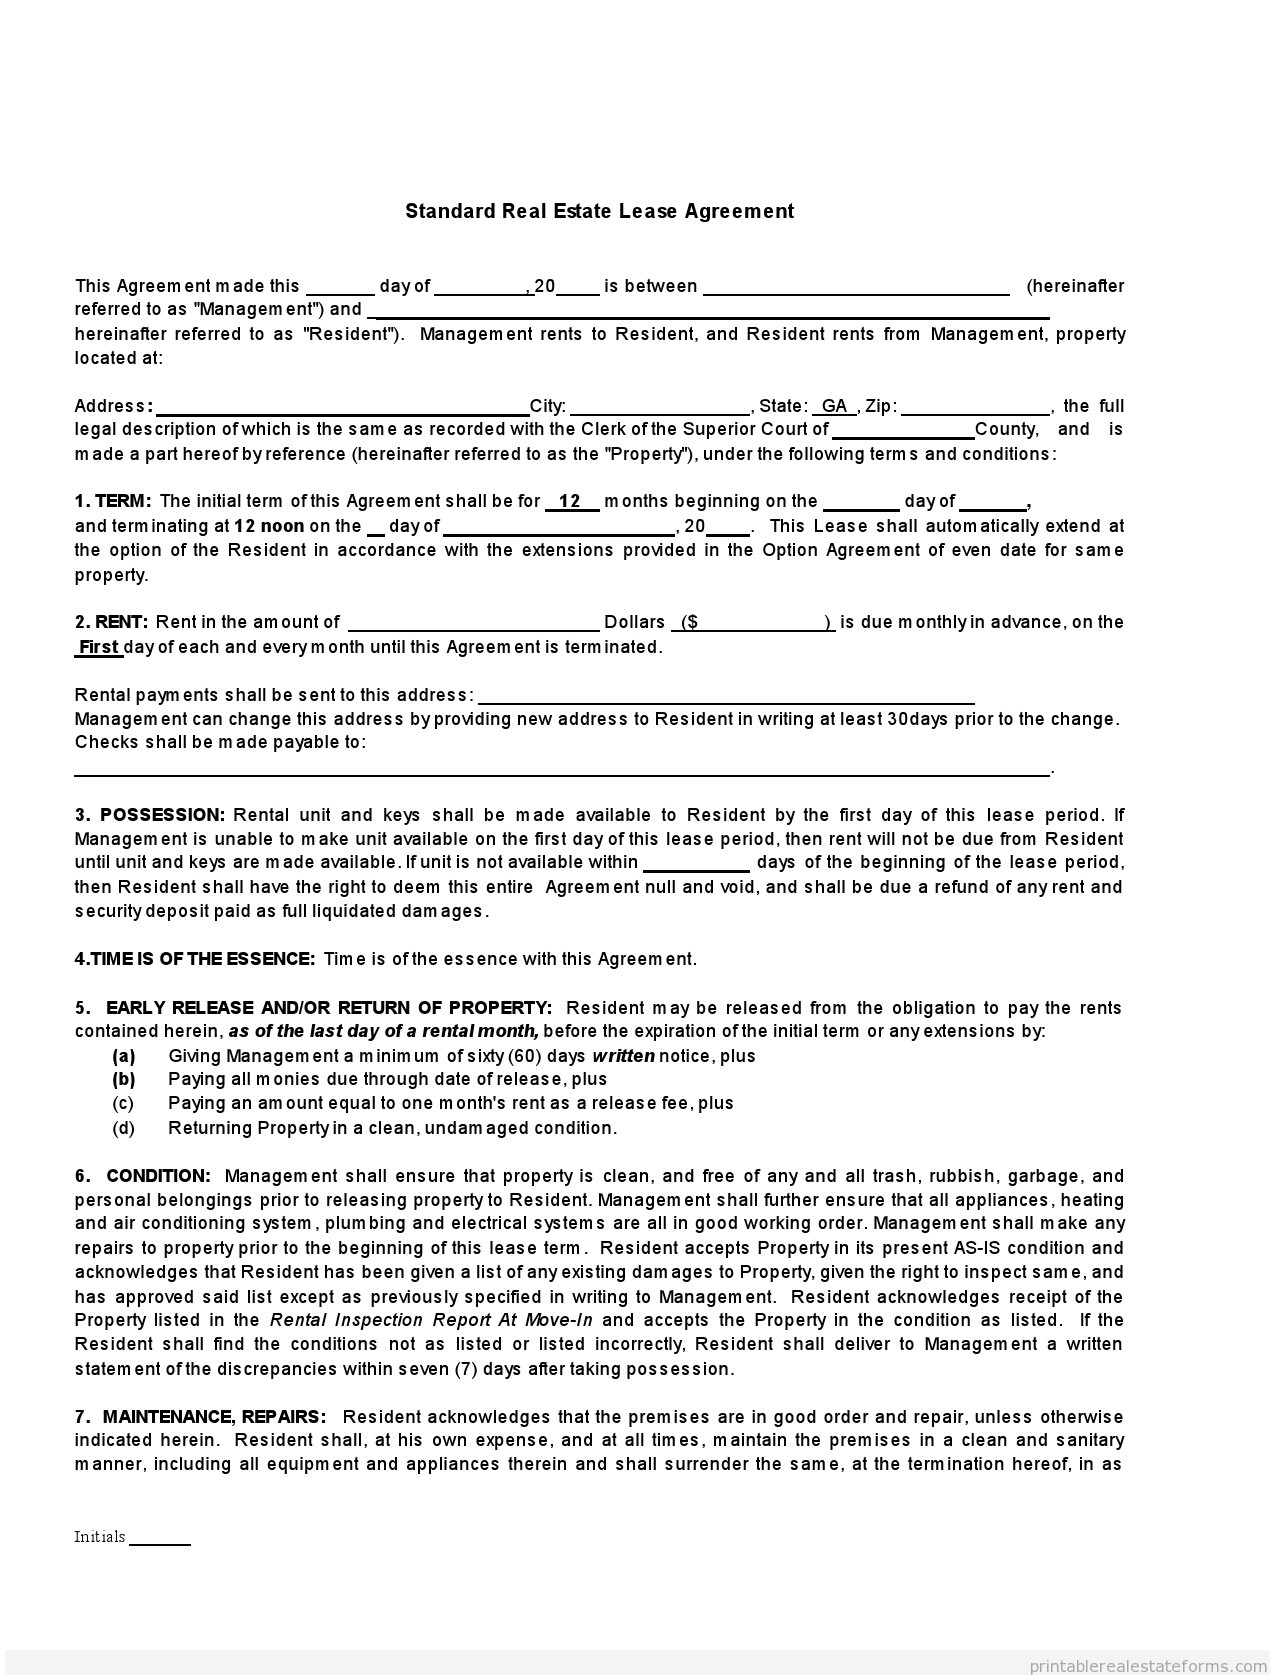 Mississippi Residential Lease Agreement Florida Real Estate Contract Form Unique Residential Lease Agreement